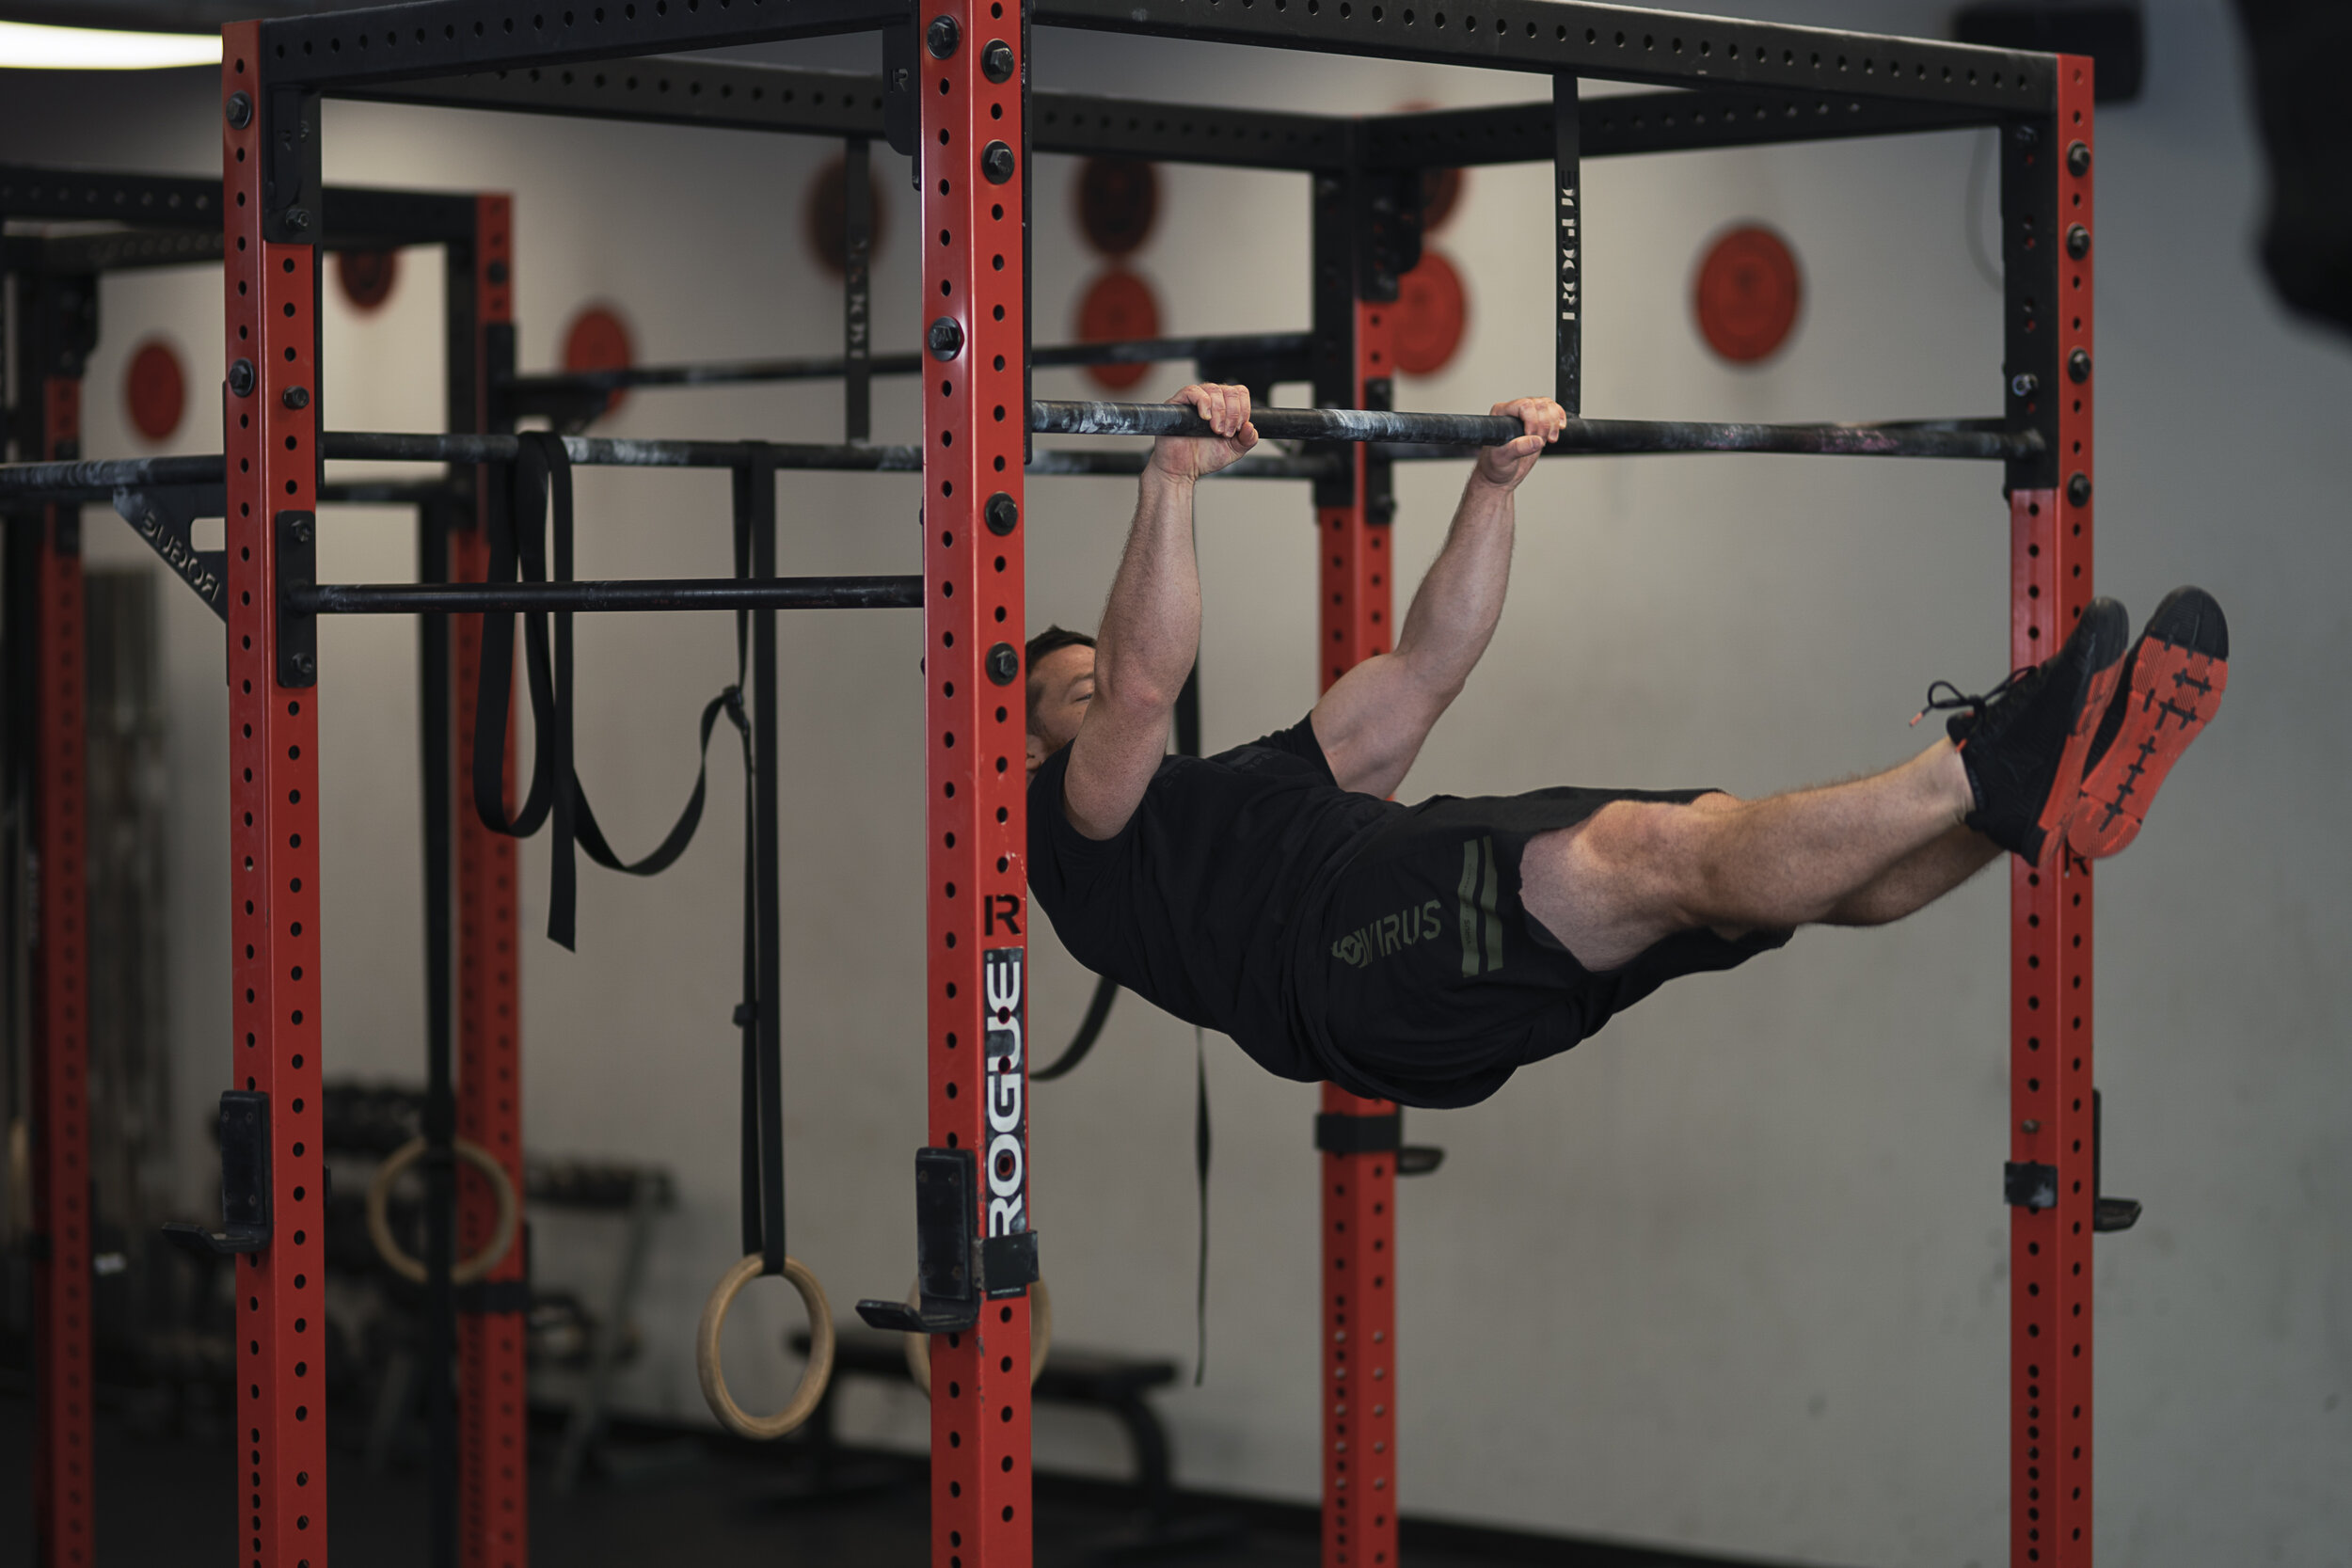 Michael Essman - – CoachCertificationsCrossFit Level 1 (CF-L1)Mike began Crossfit back in 2009 while he was playing collegiate soccer. His first workout was Helen, and he was immediately hooked after he was done gasping for air. He competed in the New England Sectionals in 2010, earning a qualifying spot for Regionals. He took a brief (6-year) hiatus from Crossfit during his college soccer career, which included studying abroad in England where he completed Master's degrees in Global Health Science and Medical Anthropology at Oxford University. His work included public health policy as well as evolutionary perspectives on human diet. He is now pursuing a PhD in Nutrition Epidemiology at UNC Chapel Hill, with a research focus on public health policies for obesity and diabetes prevention.He believes that Crossfit should be for everyone, regardless of whether you are a competitor, trying to get a beach bod, or just trying to move better. Regardless, we have to resist the state of the human population depicted in WALL-E.When he's not at the gym, you can probably find him at Chipotle, Med Deli, or walking around Chapel Hill listening to podcasts.